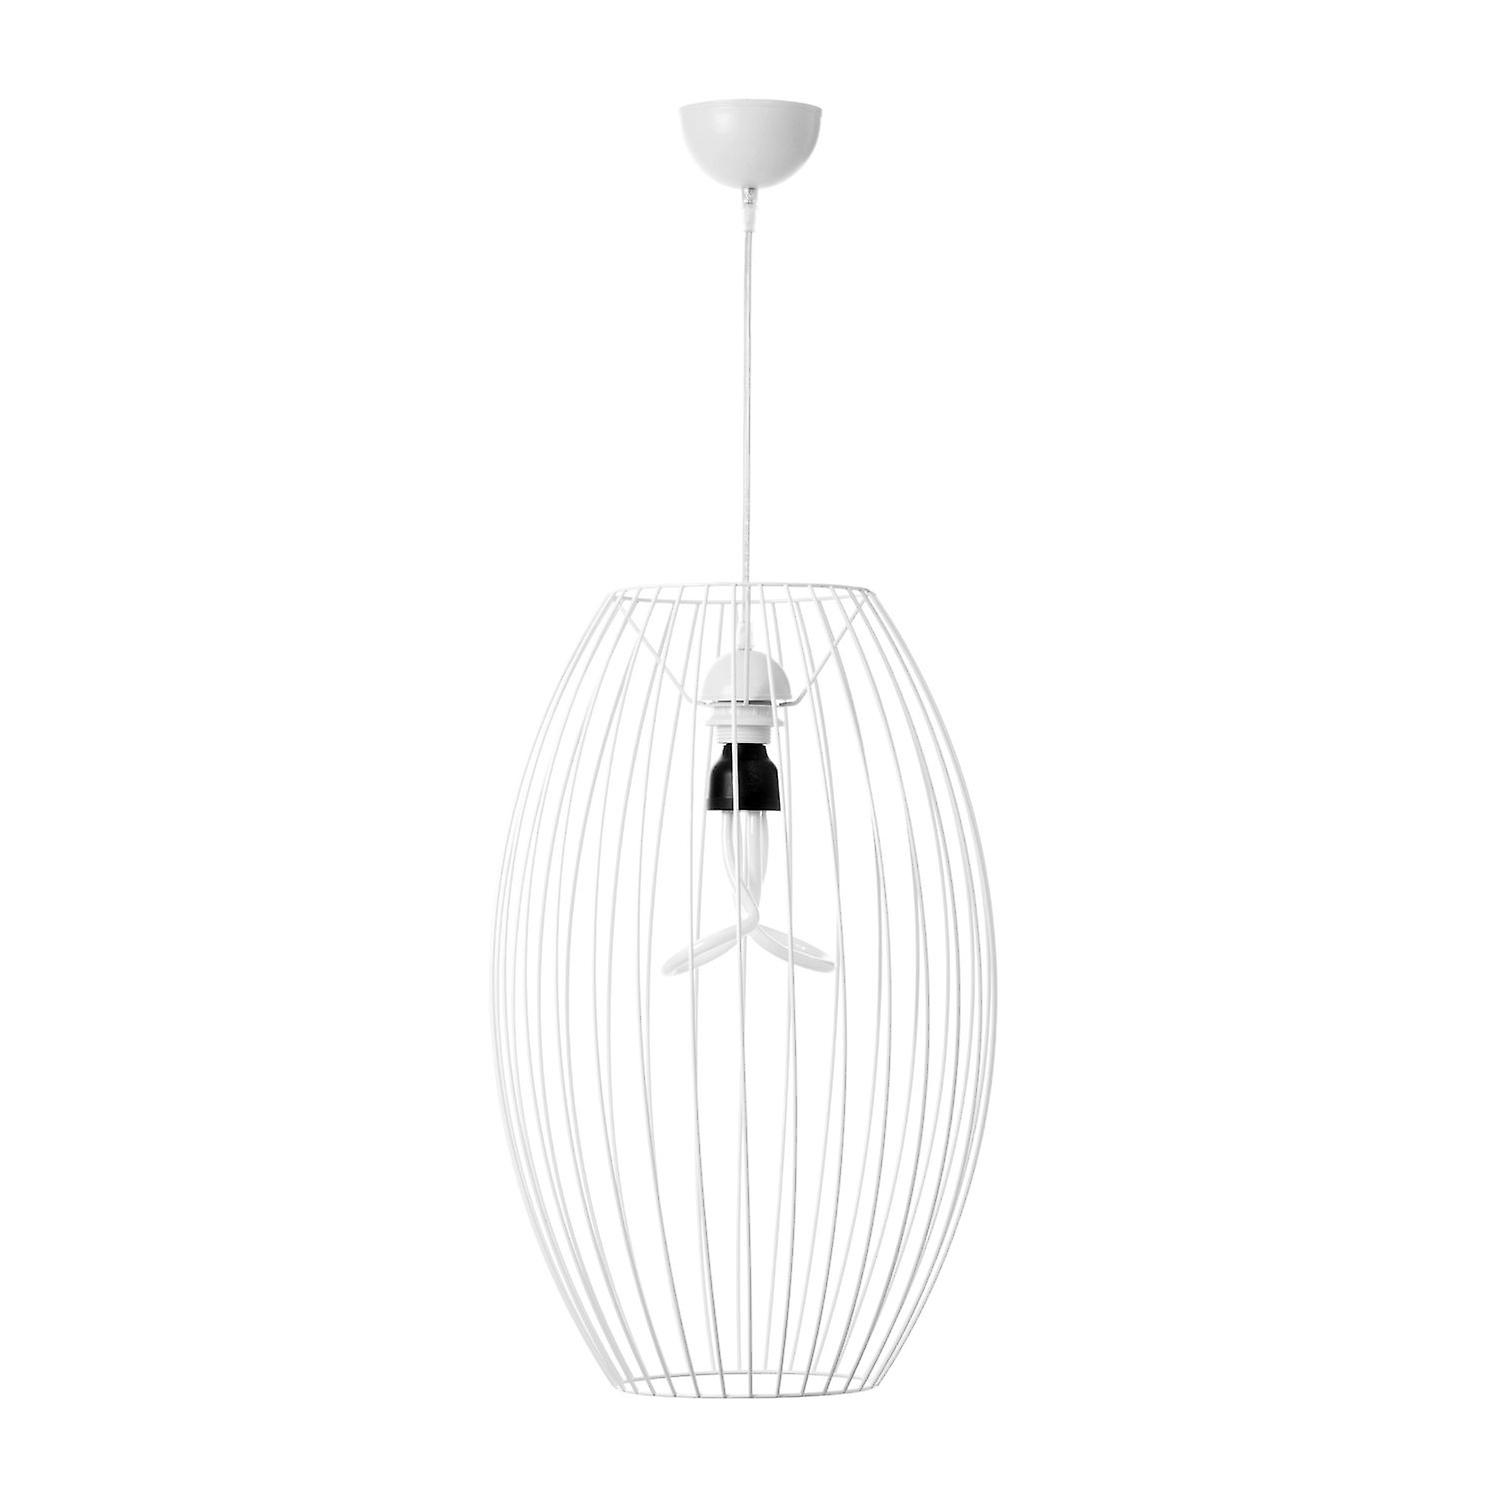 Suspension Blanc Scandi Lampe Look Salon Design Luminaire Lumineux Moderne tsQxdChr